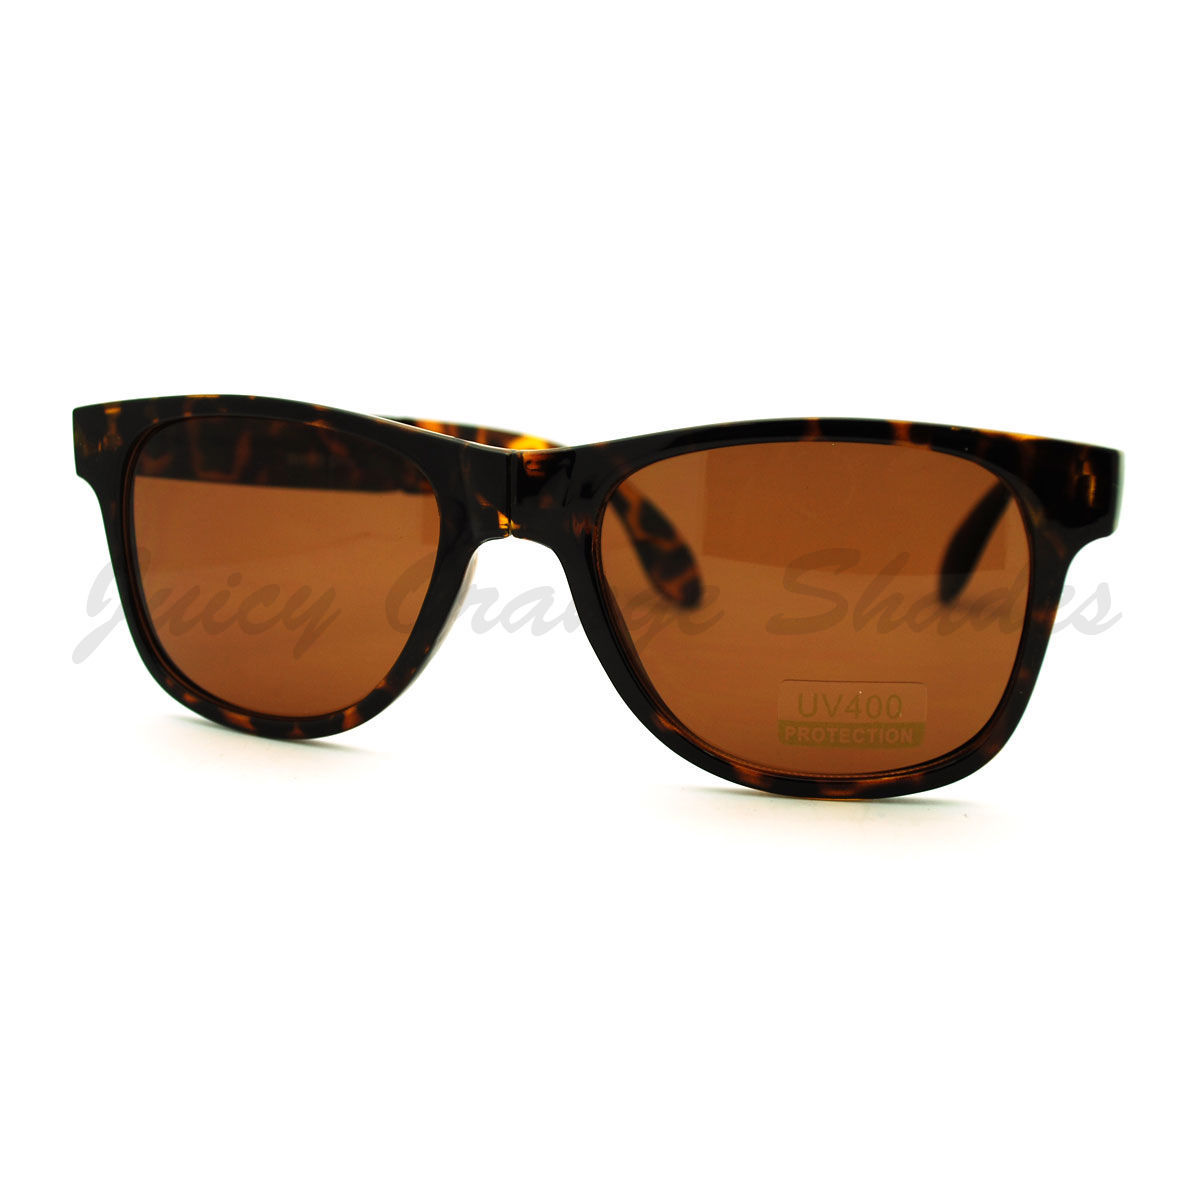 Folding Foldable Sunglasses 80's Classic Square Horn Rim Shades